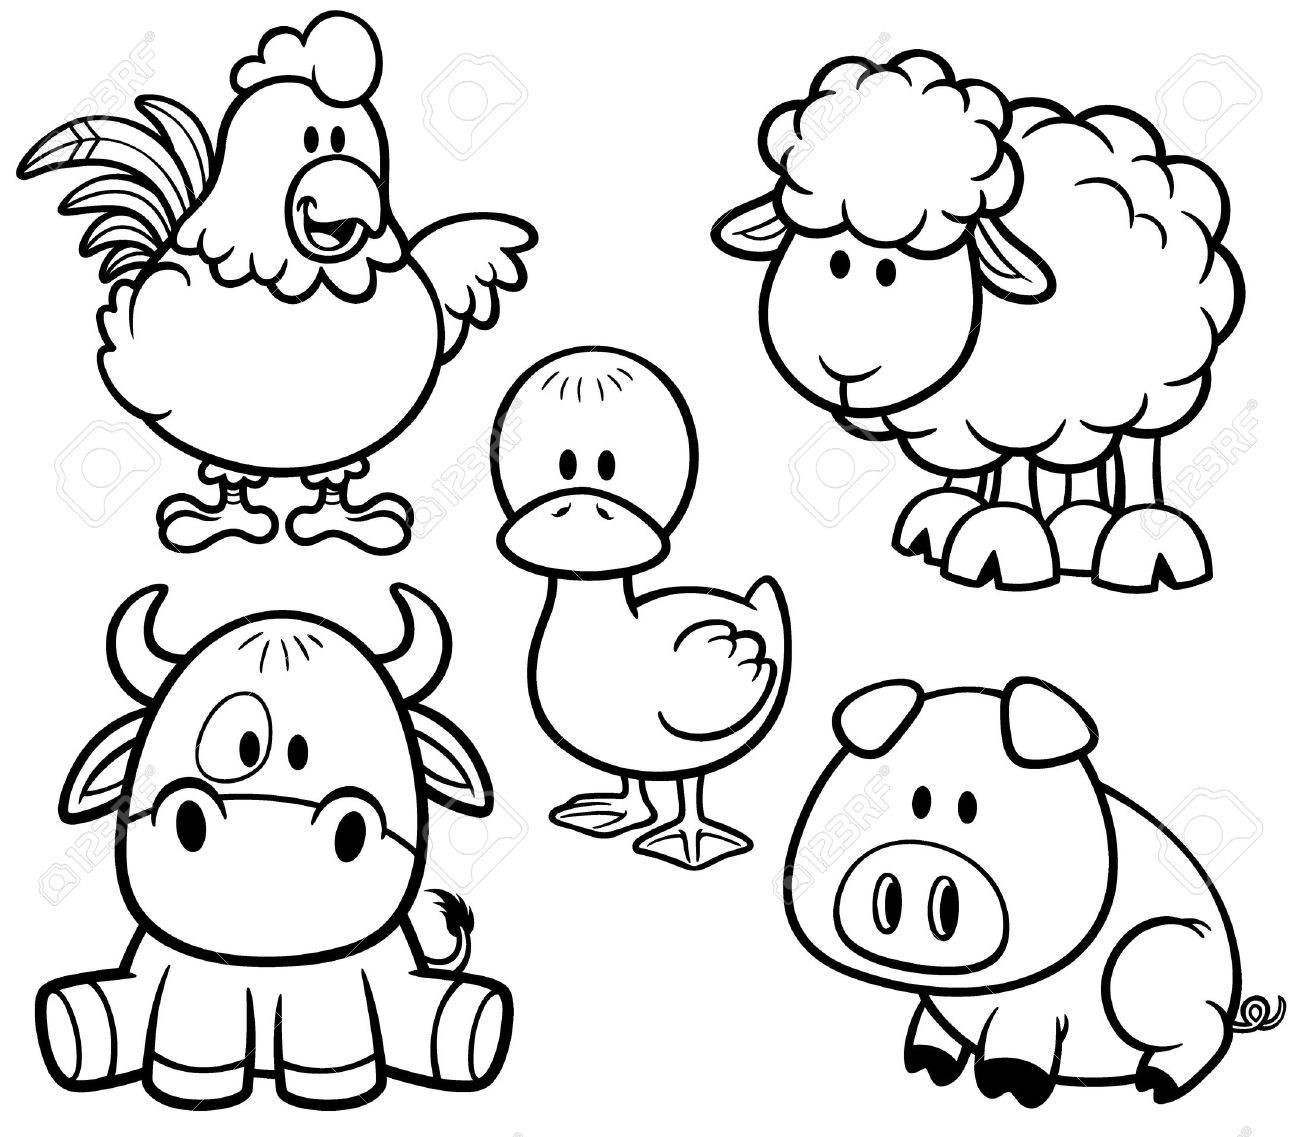 Best ideas about Free Printable Coloring Pages Animals . Save or Pin Cute Baby Farm Animal Coloring Pages Best Coloring Pages Now.